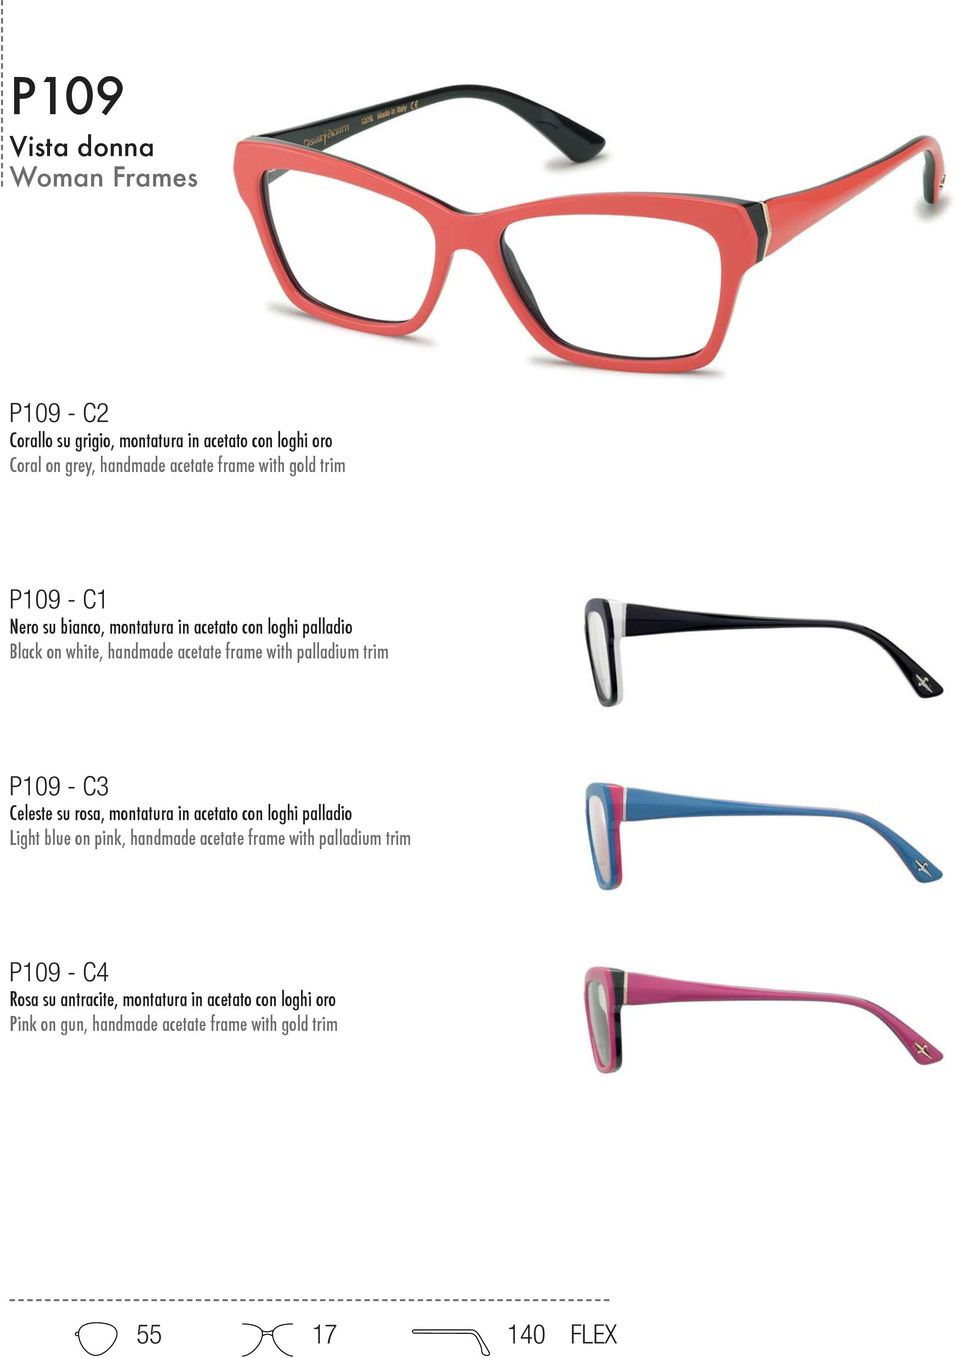 trim P109 - C3 Celeste su rosa, montatura in acetato con loghi palladio Light blue on pink, handmade acetate frame with palladium